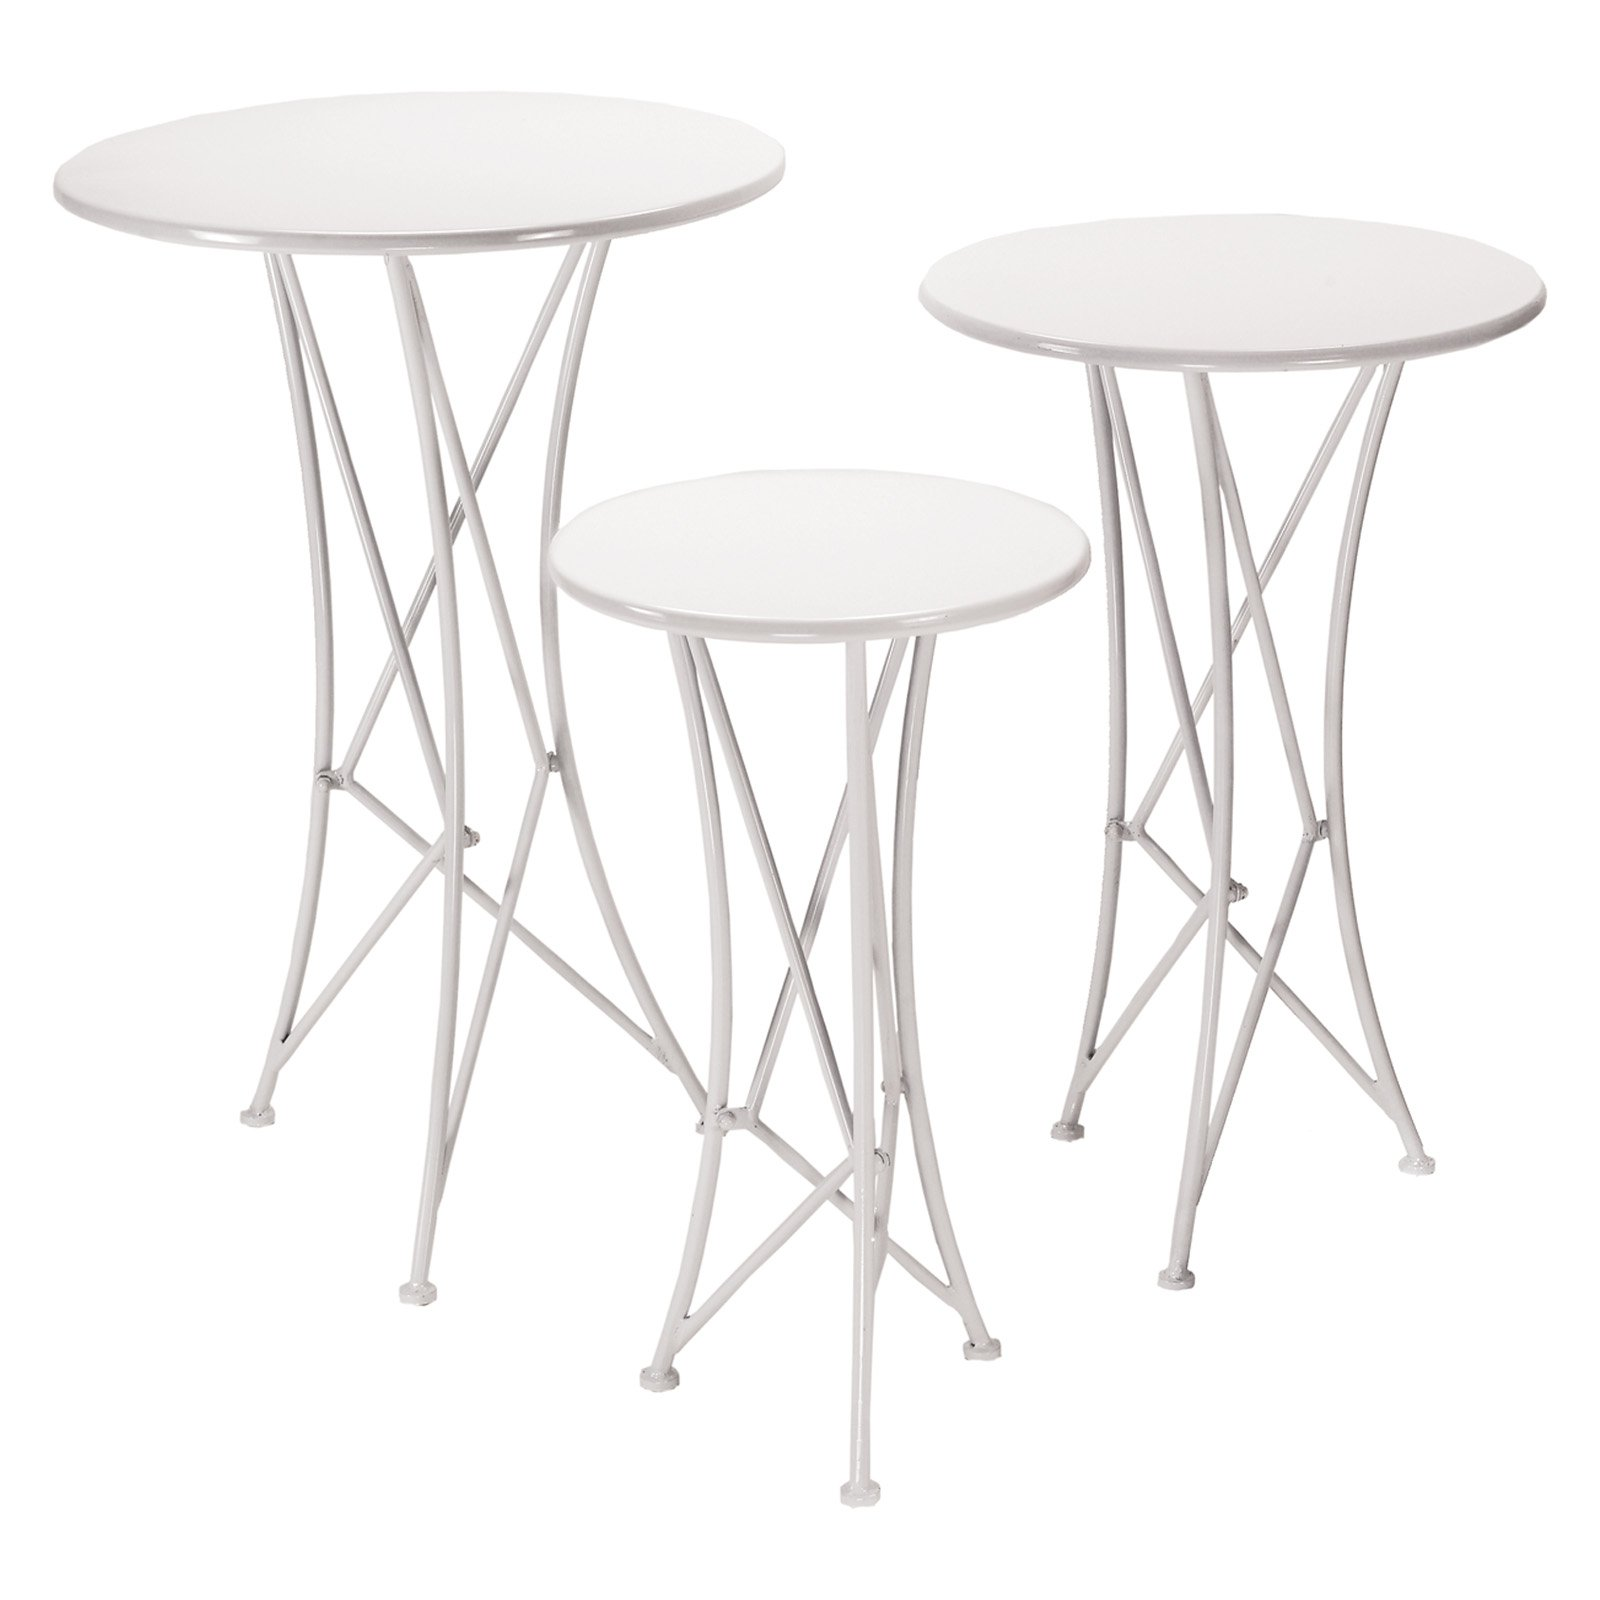 Napco Round White Metal Table - Set of 3